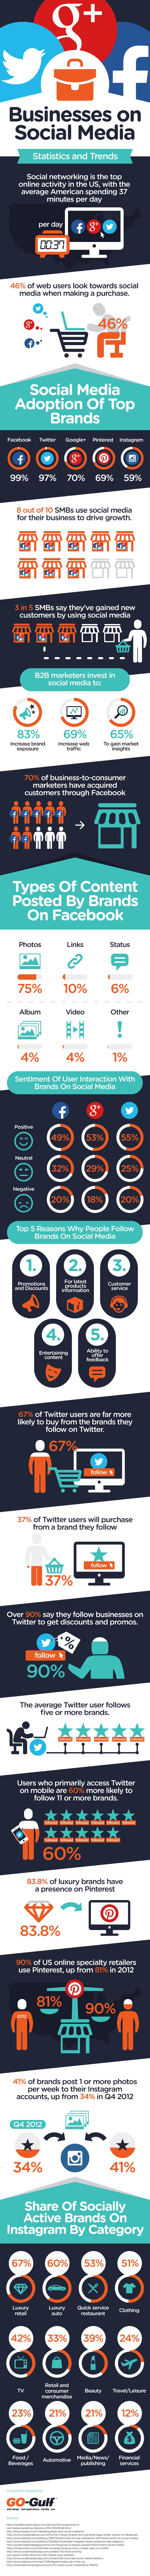 #Social #Infographic: Businesses on Social Media Statistics and Trends